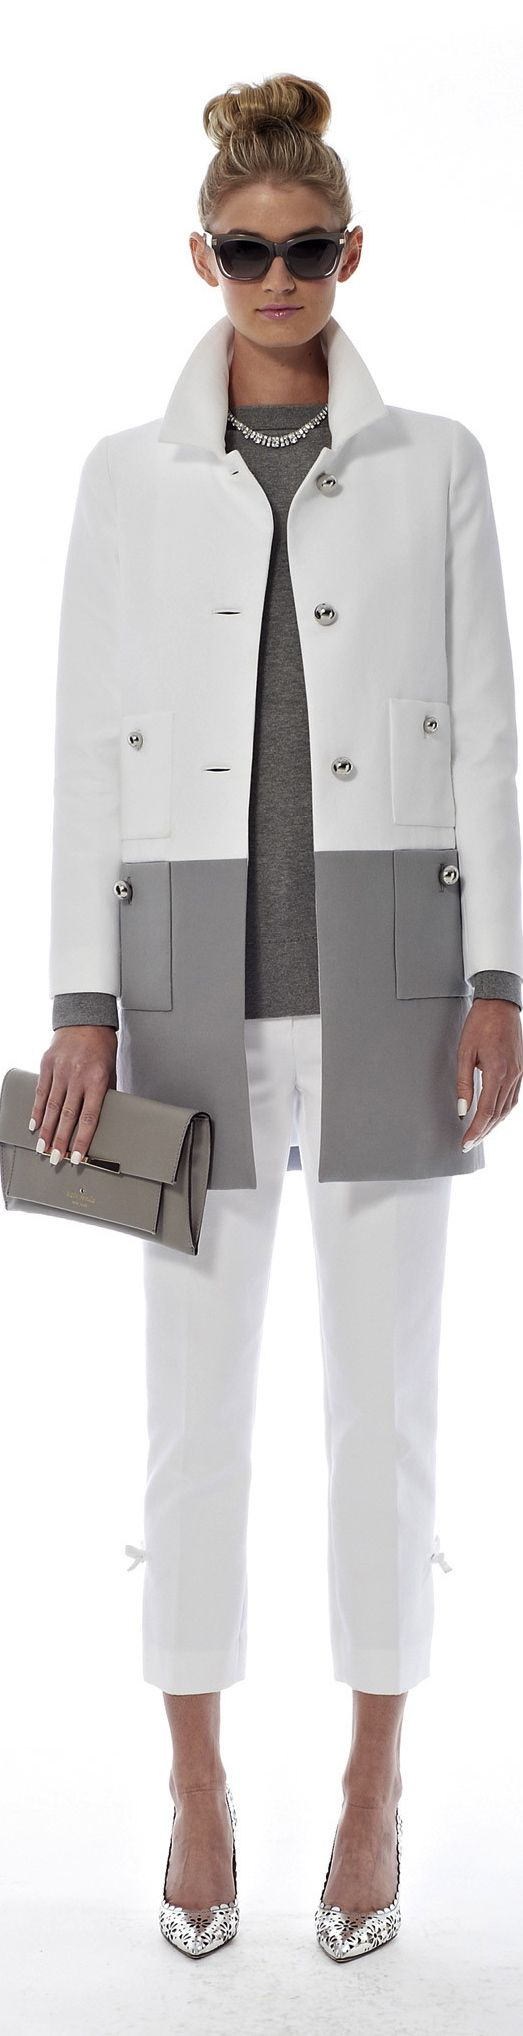 I like the color block on this coat, but probably not in white. Buttons make it more formal than I'm looking for.